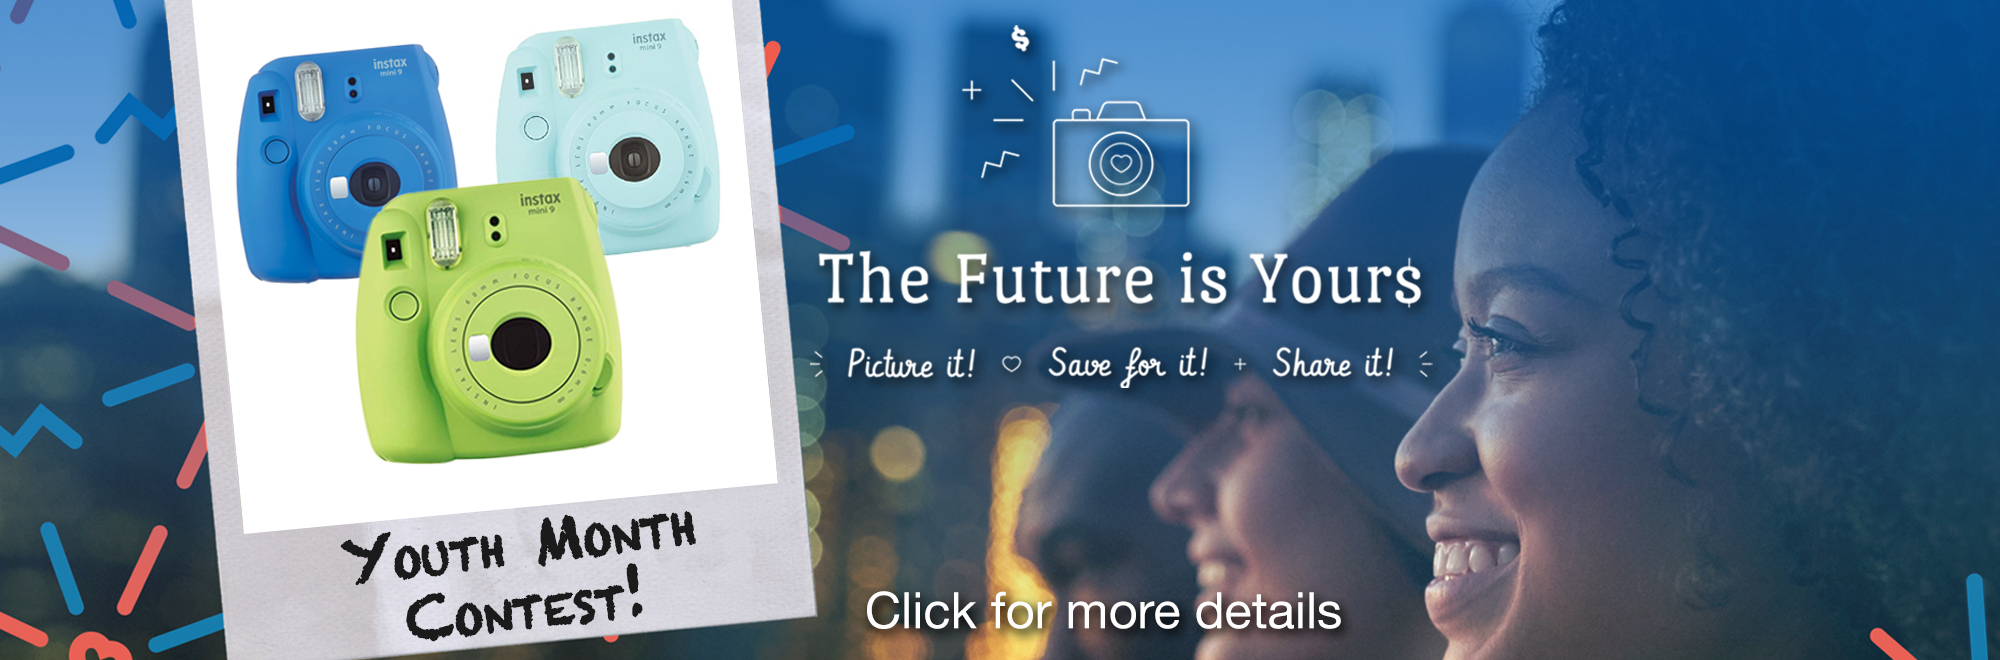 Learn more about our Youth Month Contest. The future is yours. Picture it, save for it, share it!